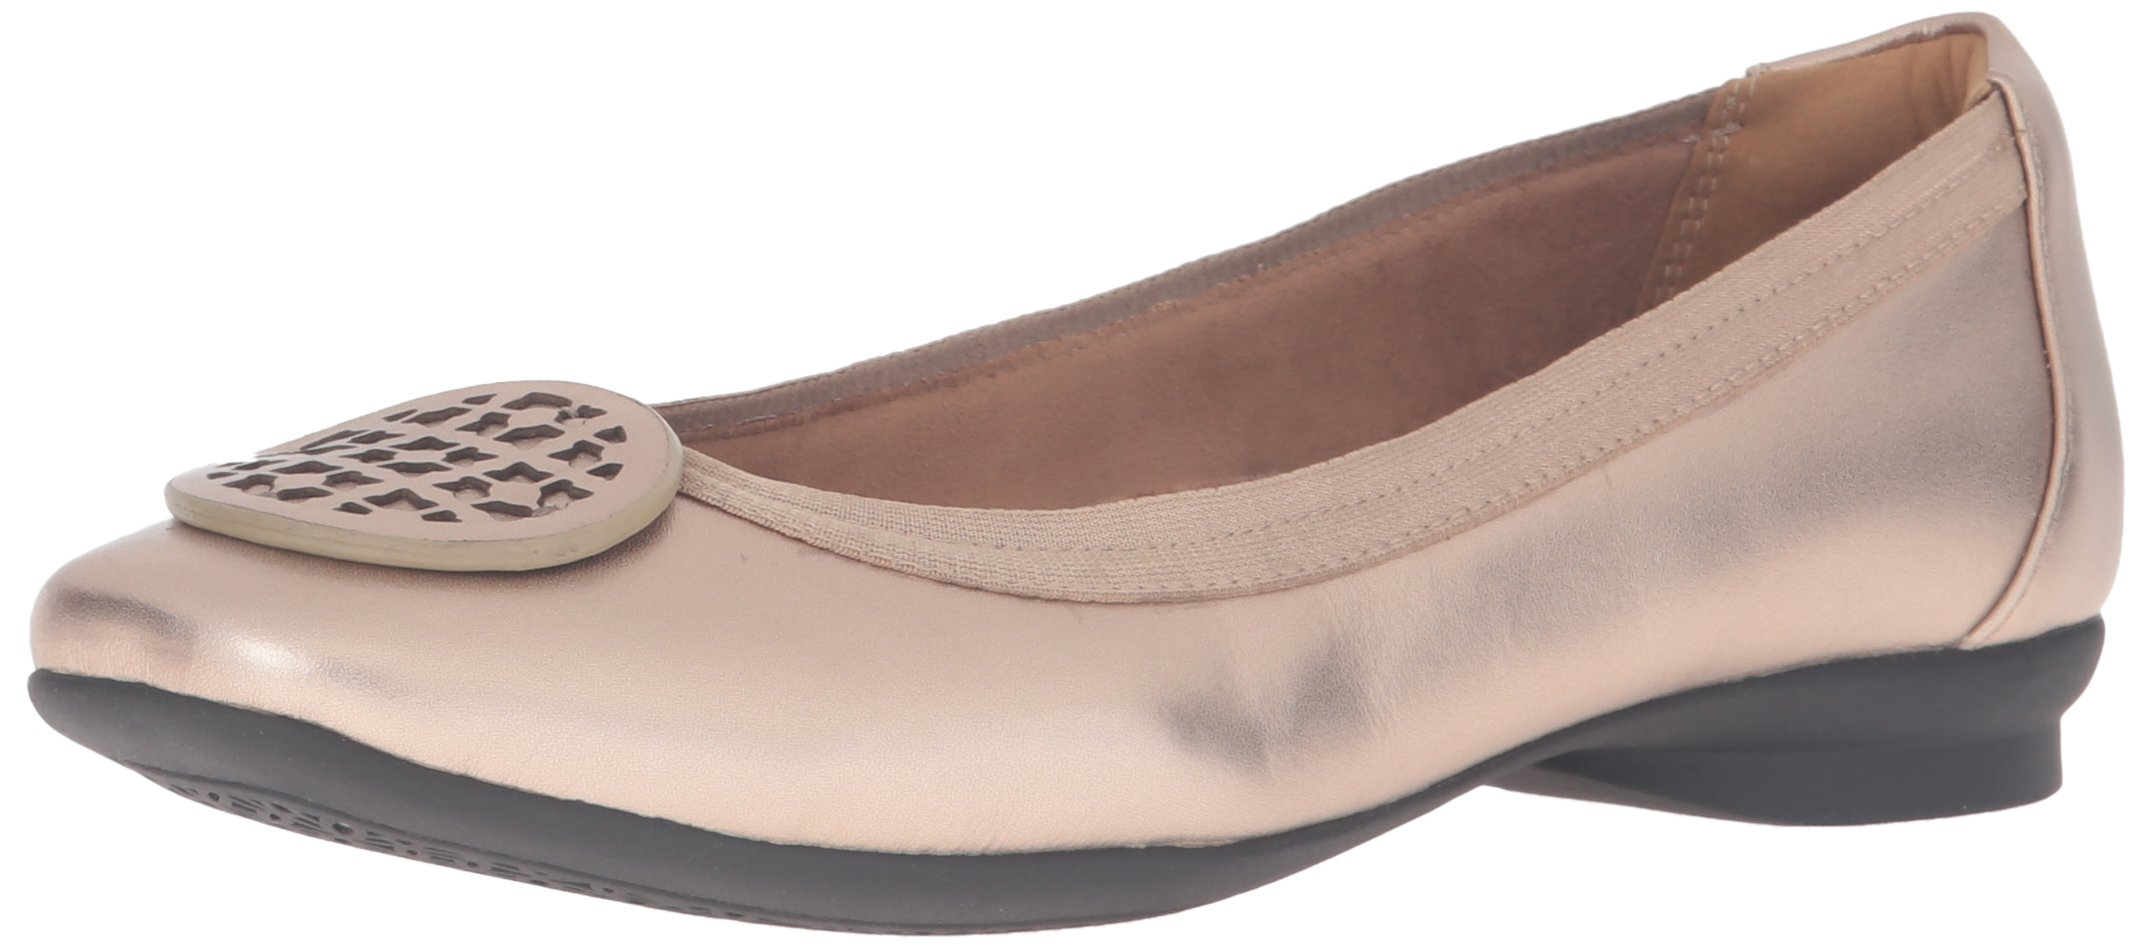 Clarks Women's Candra Blush Flat, Gold/Metallic, 10 M US by CLARKS (Image #1)